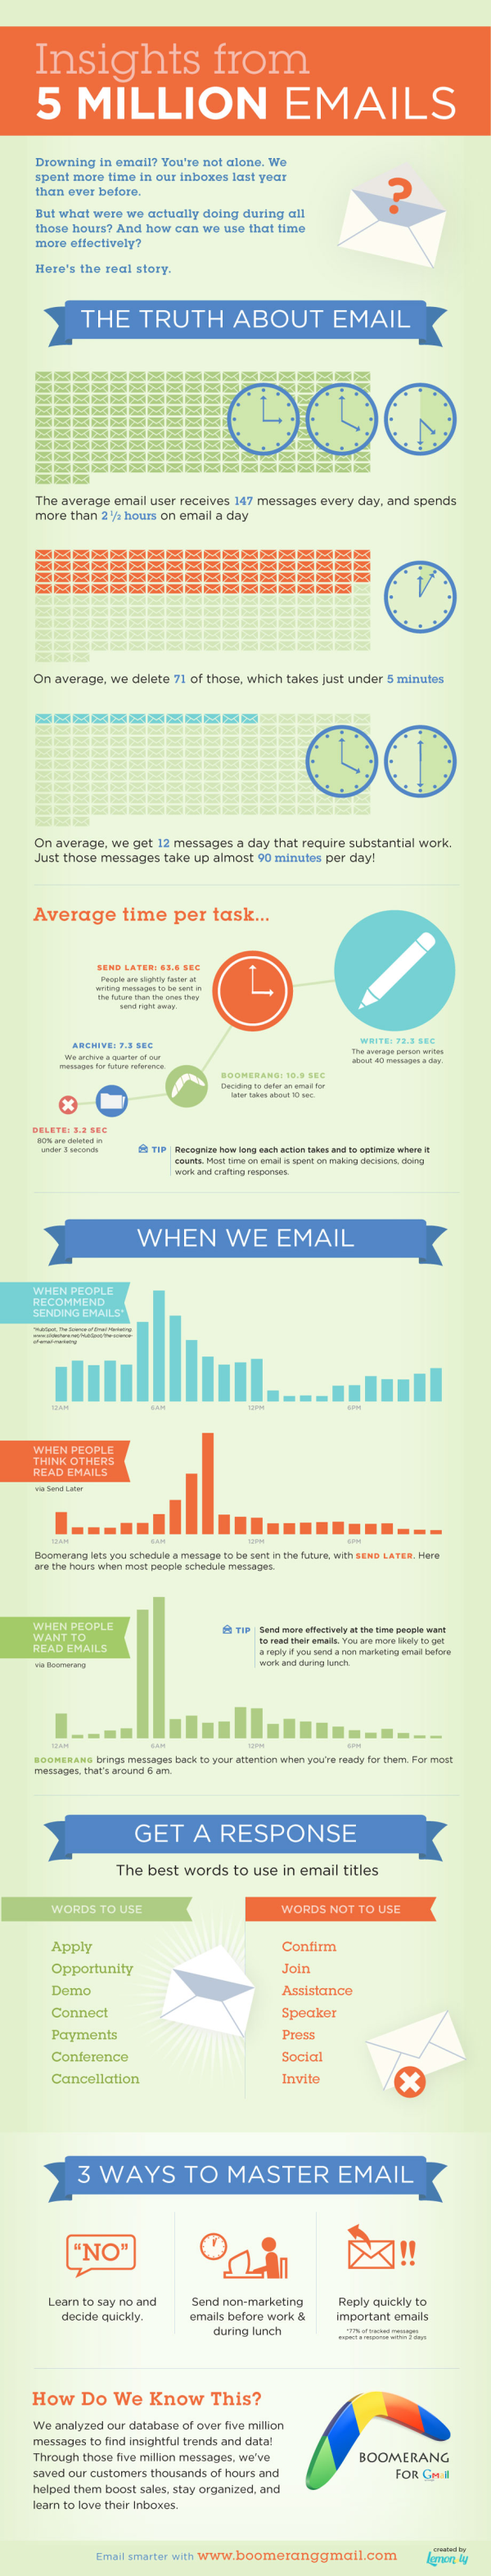 boomerang email infographic1 resized 600